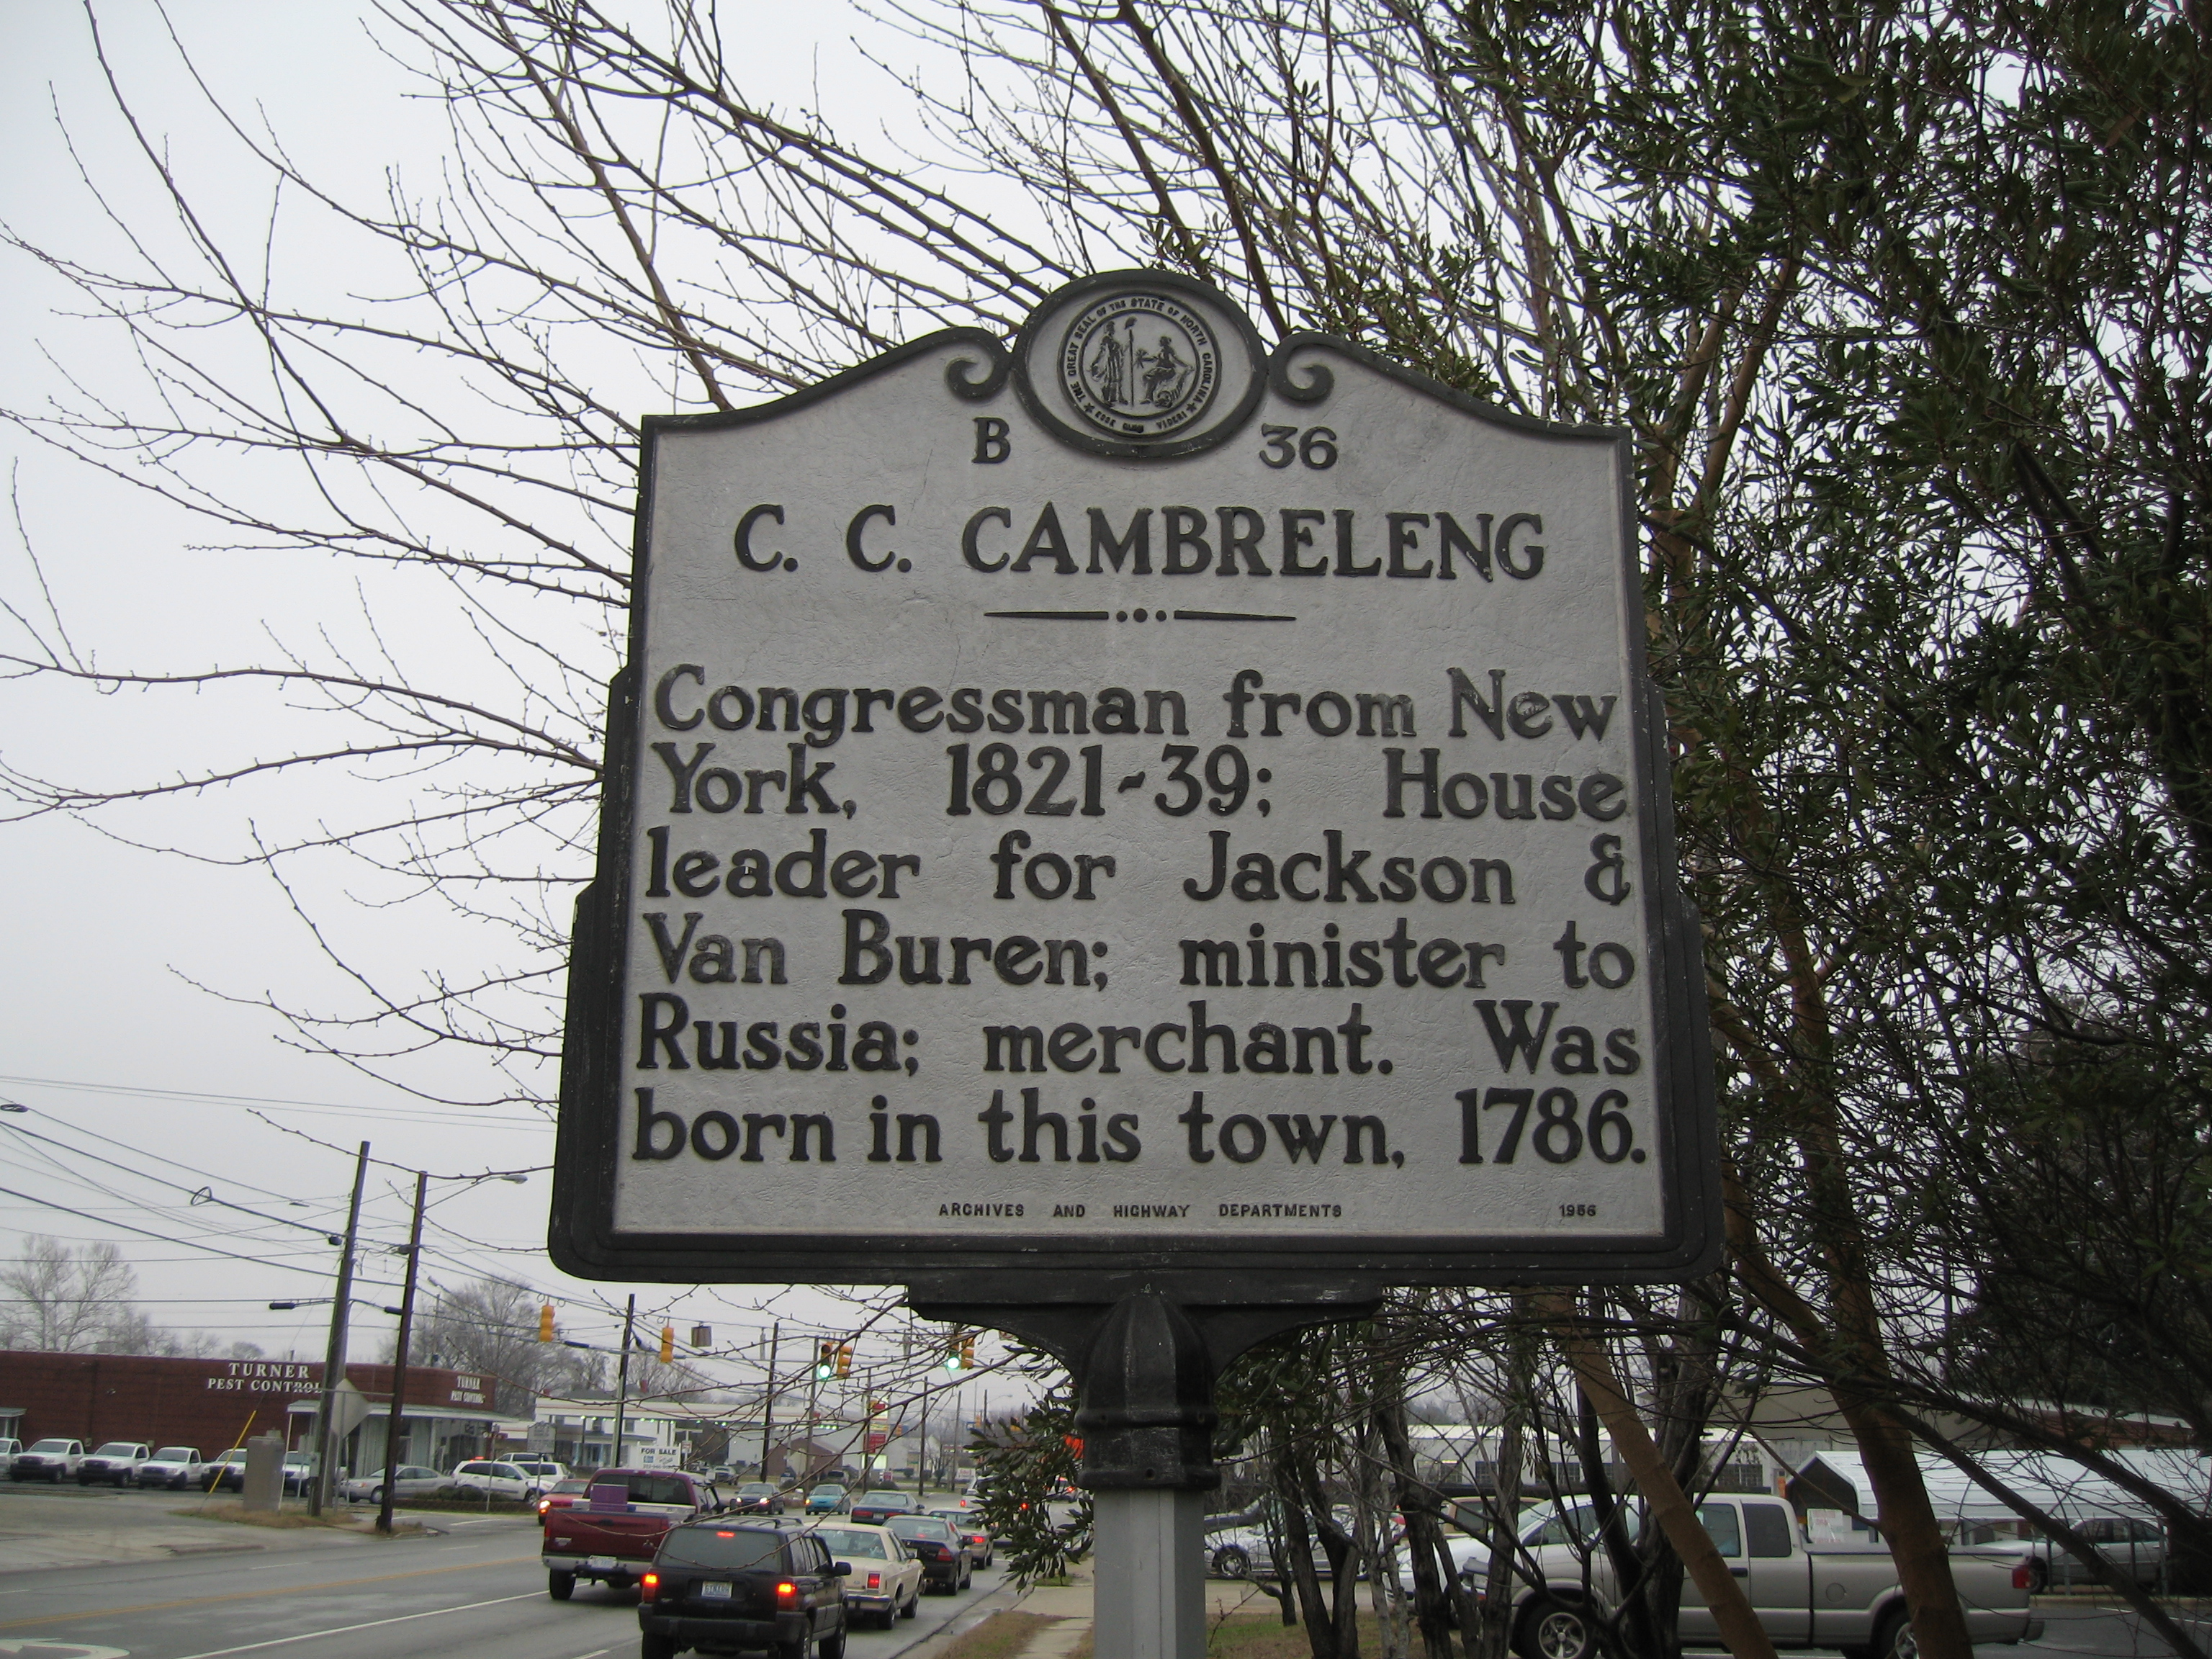 Churchill C. Cambreleng